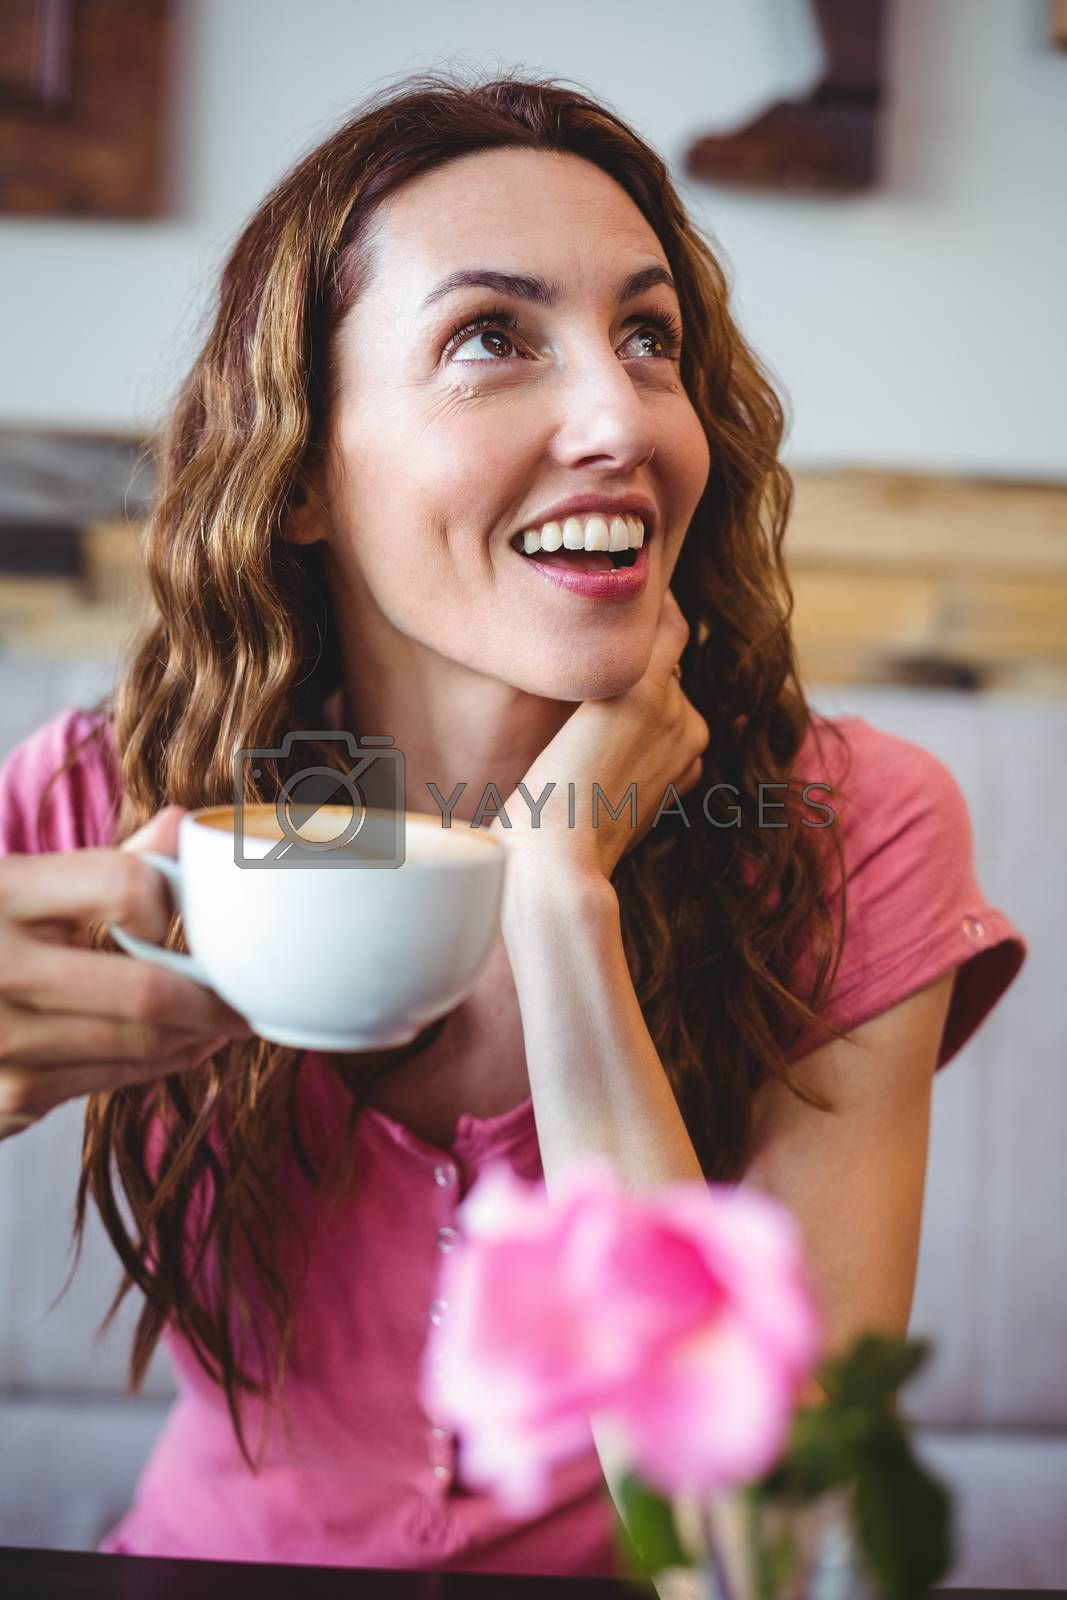 Royalty free image of Woman enjoying her cup of coffee by Wavebreakmedia